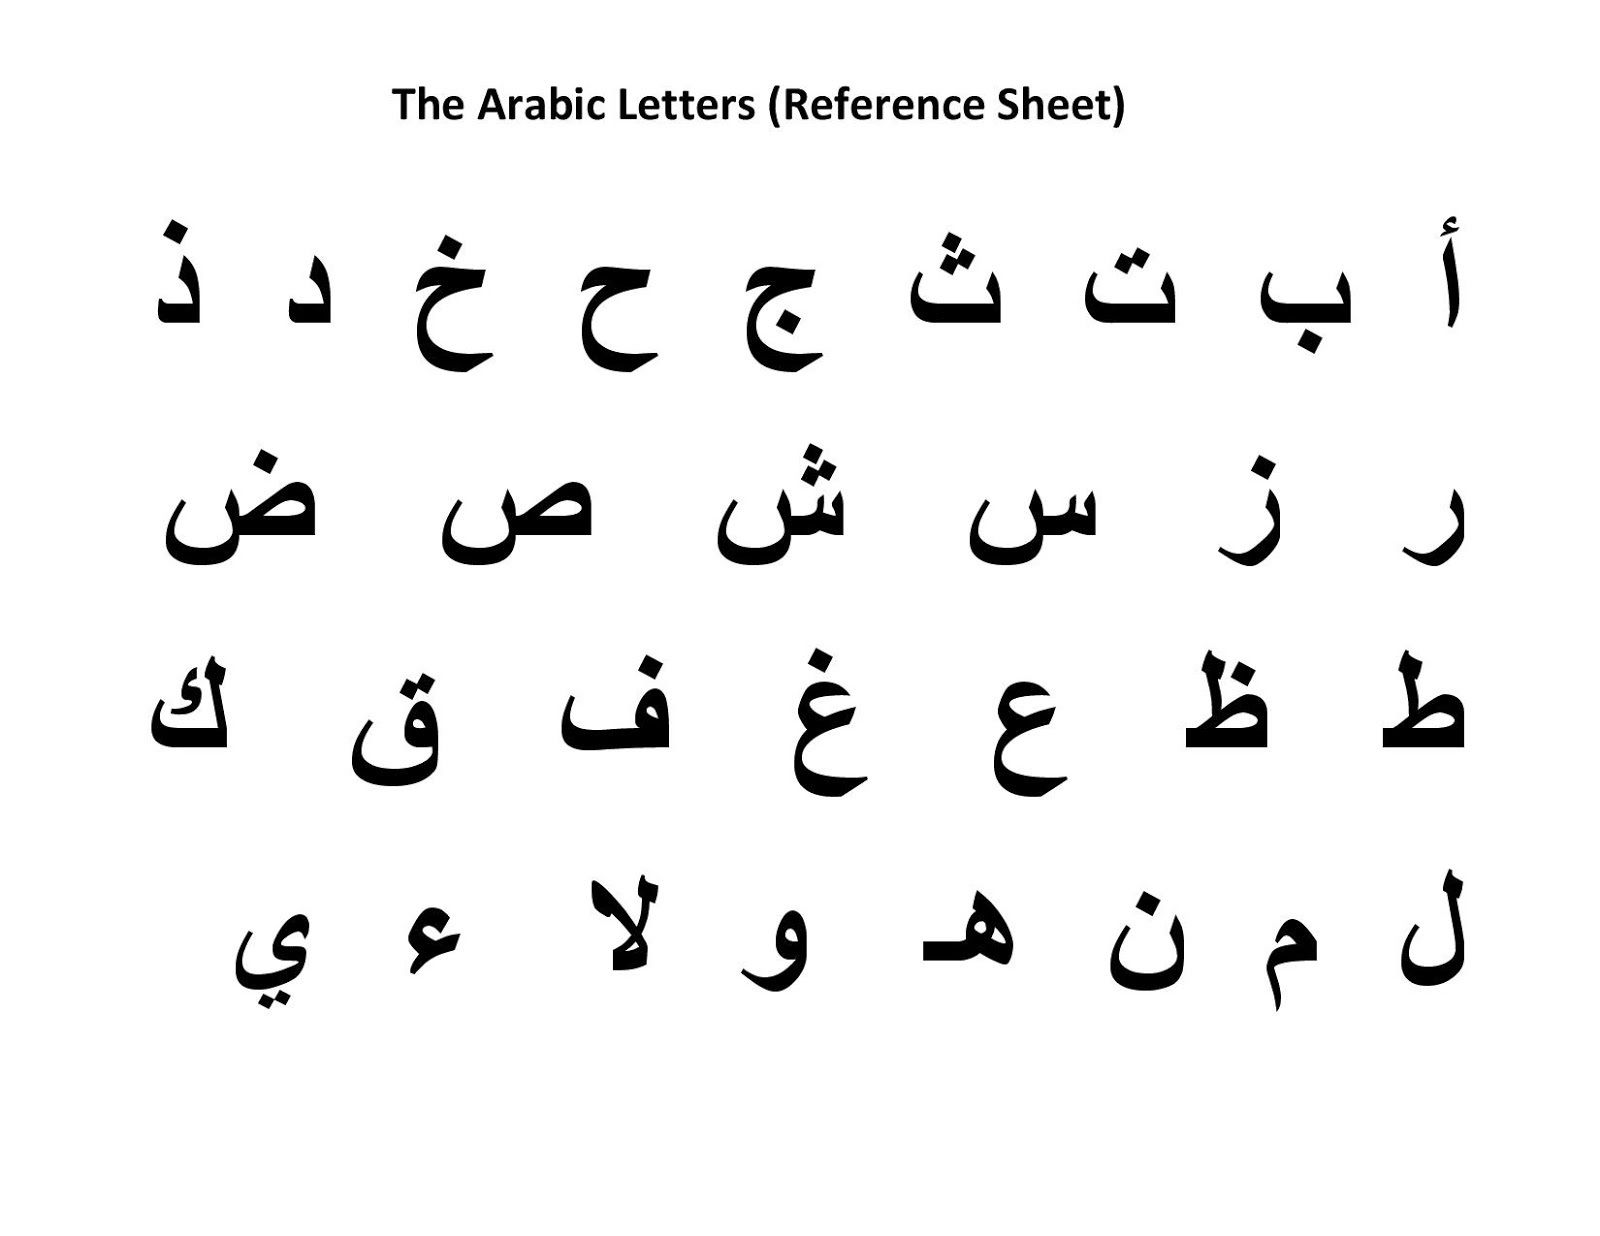 Worksheet For Arabic Students Learning English